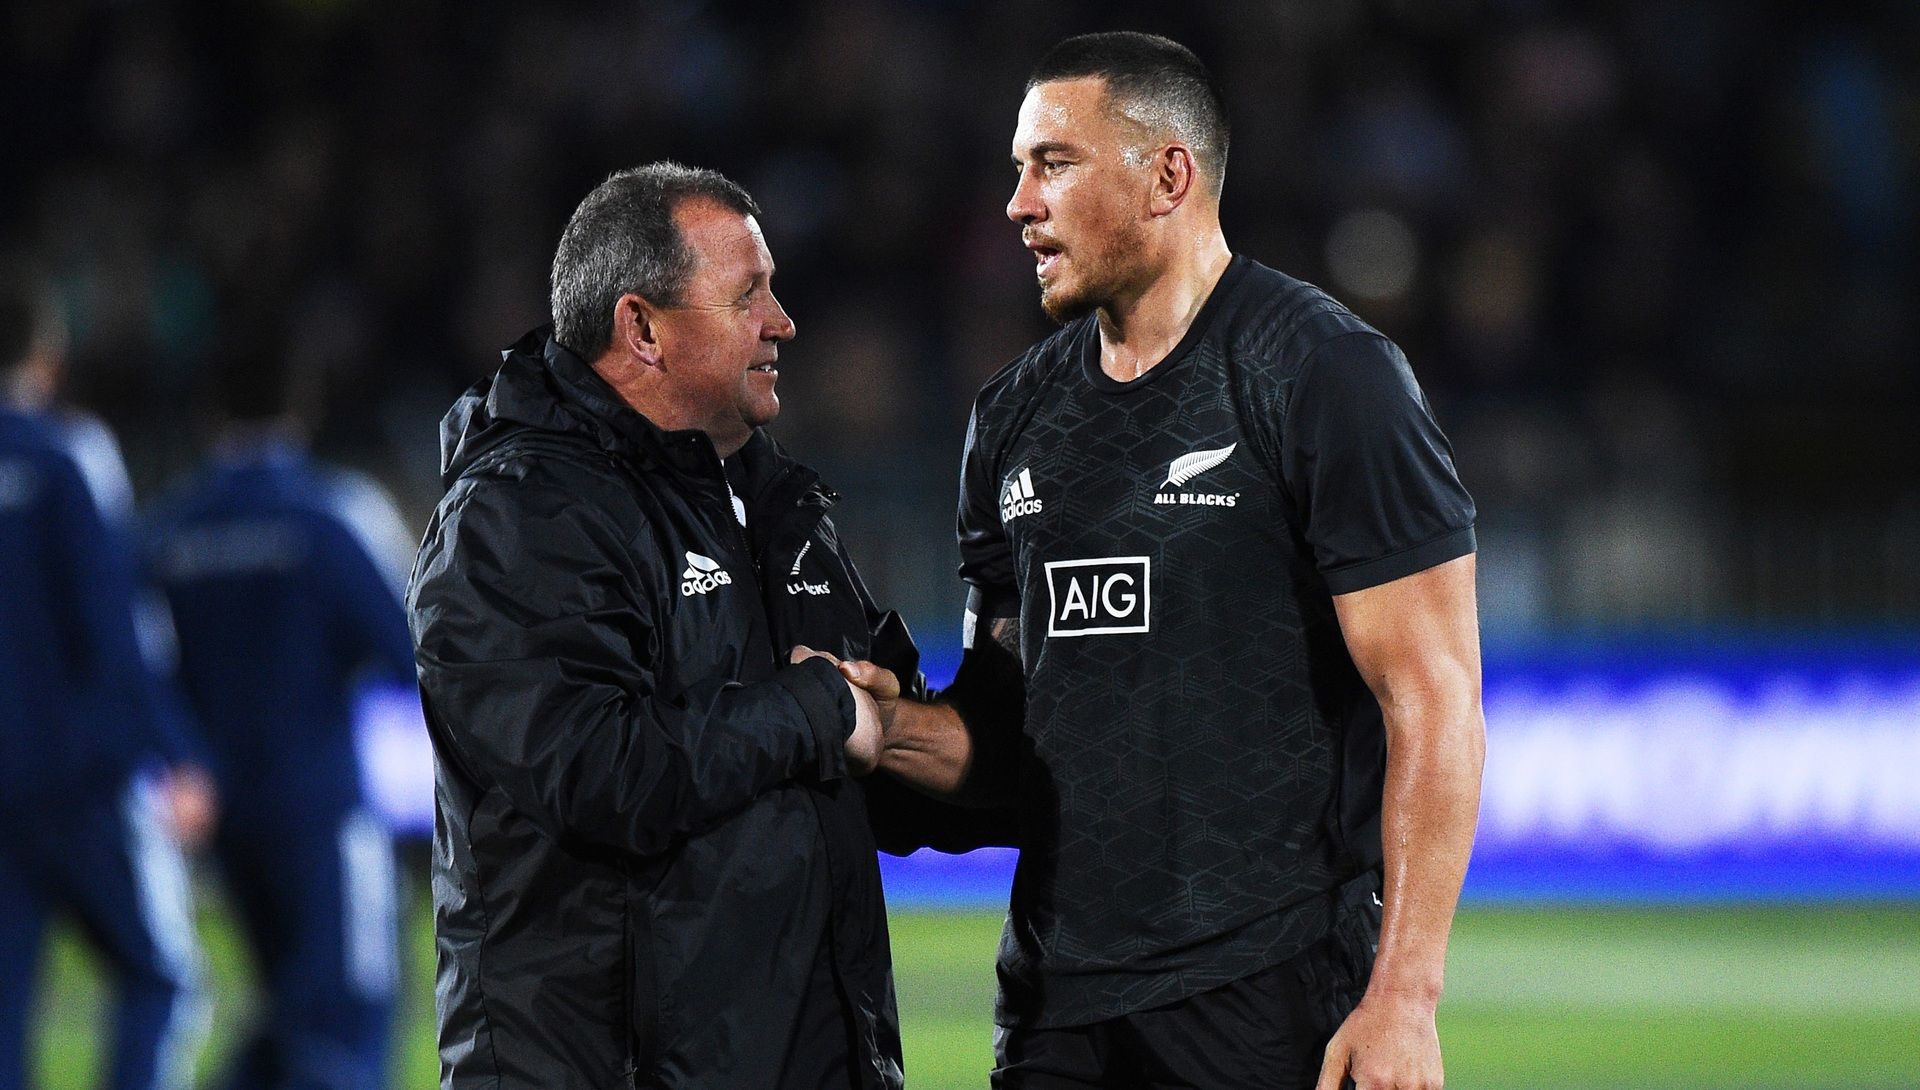 Rugby Championship: 'Grumpy' Sonny Bill Williams doubtful for All Blacks as Ngani Laumape impresses coaches ahead of Argentina clash